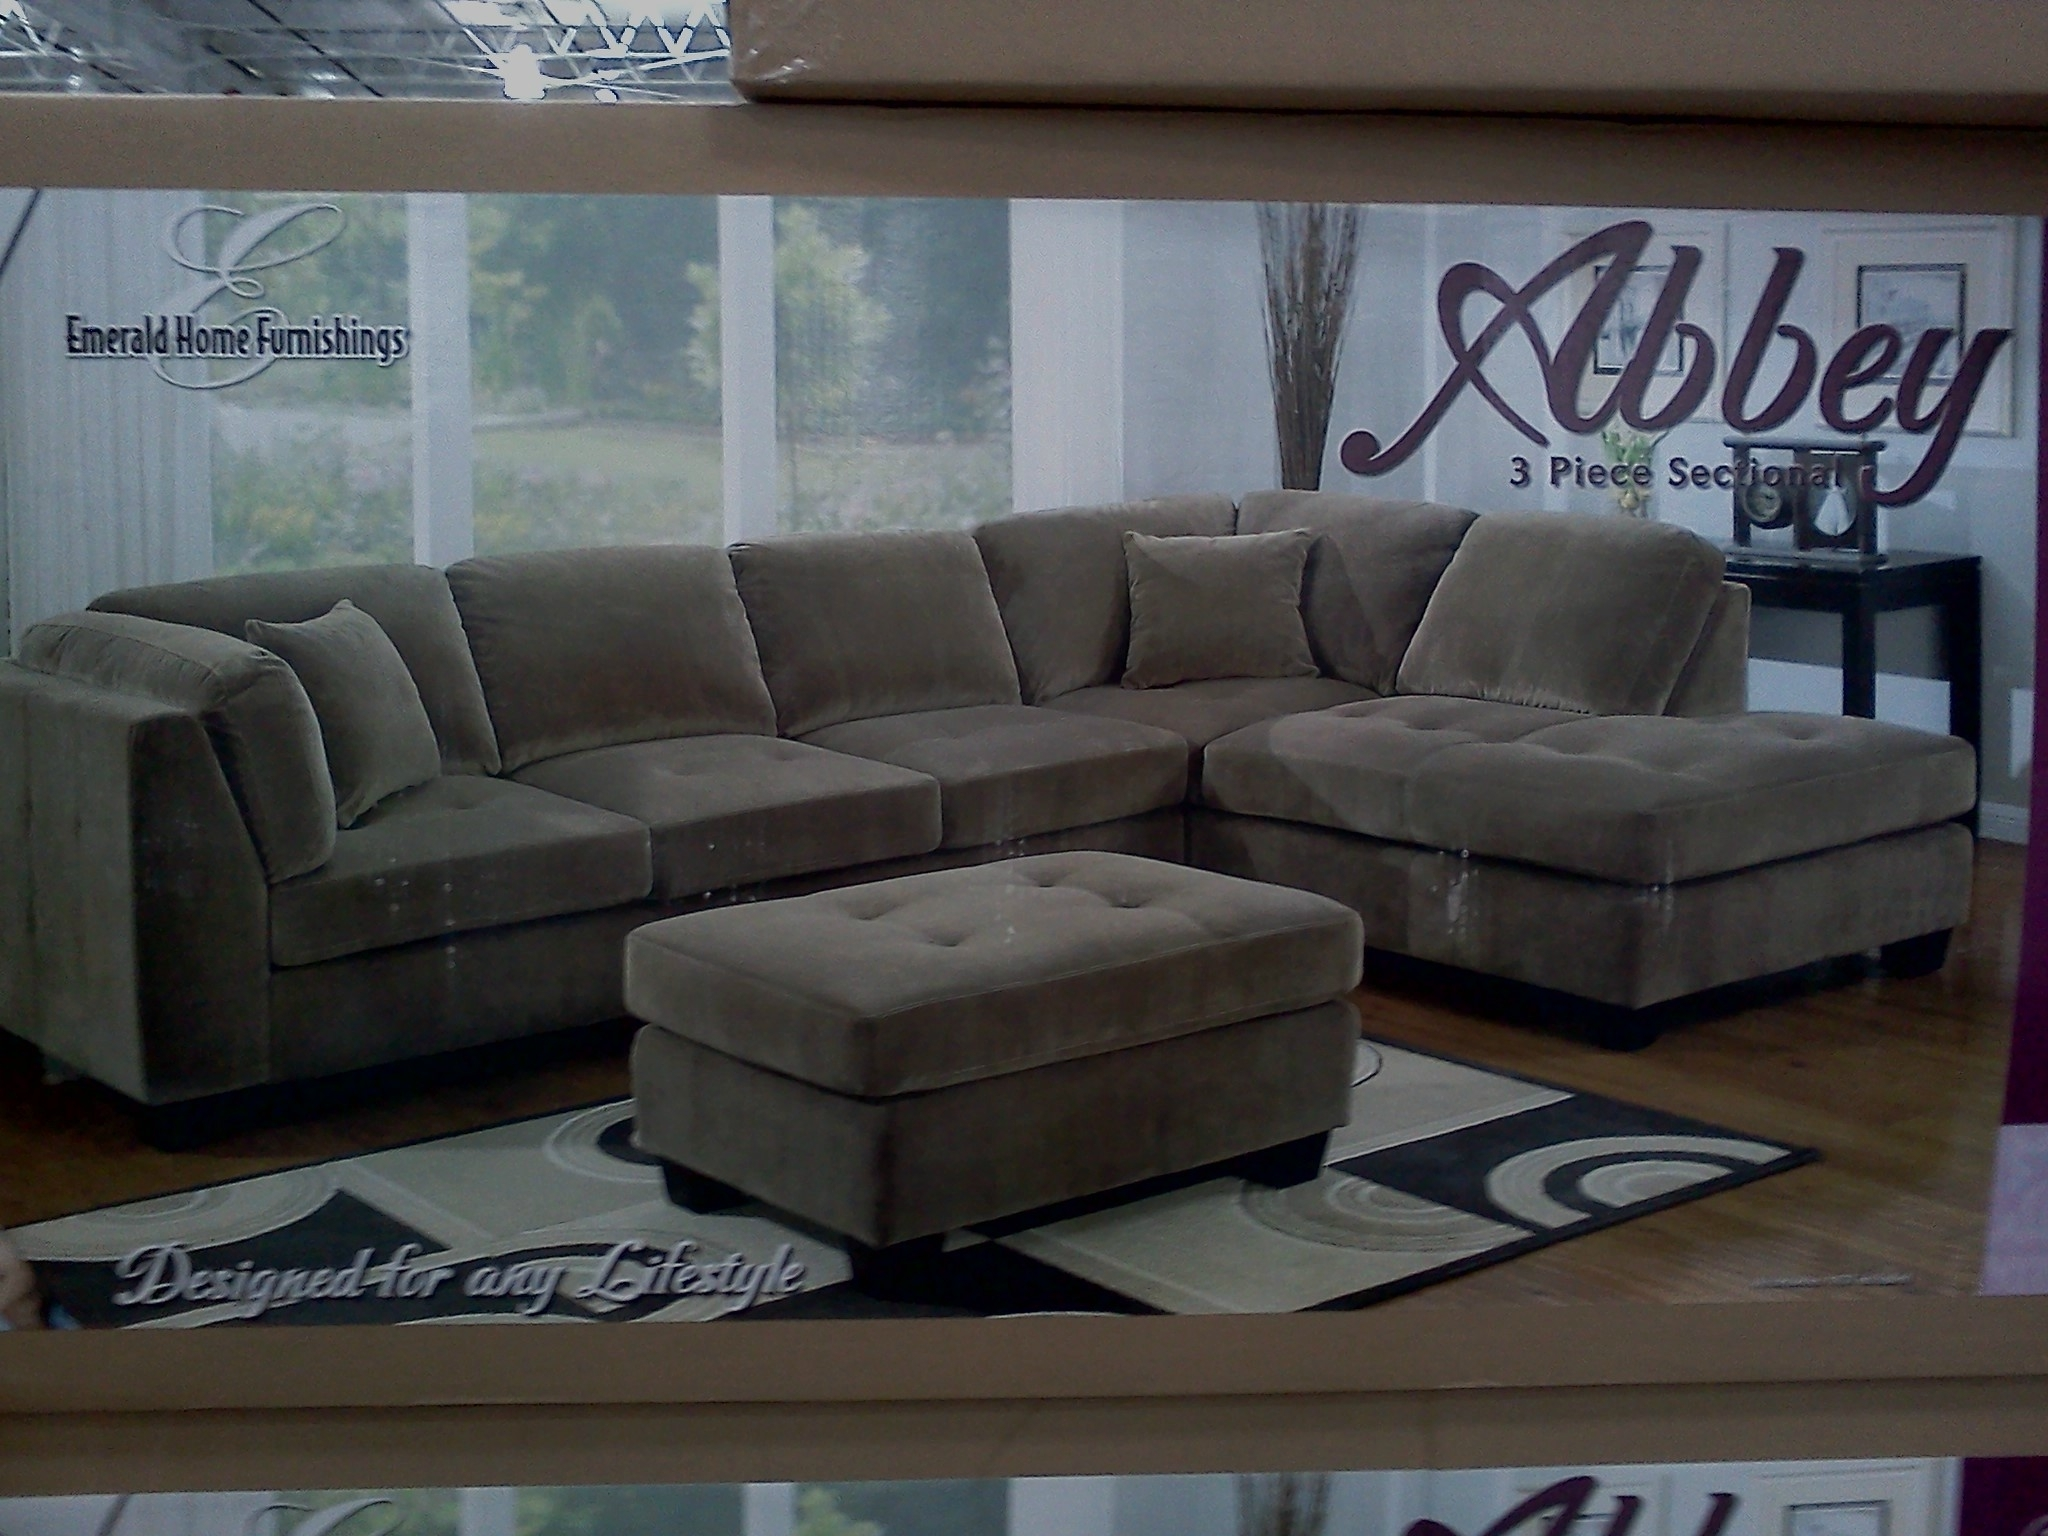 Costco Emerald Home Modular Sectional Slickdeals – Kaf Mobile Homes For Sectional Sofas At Costco (View 5 of 15)